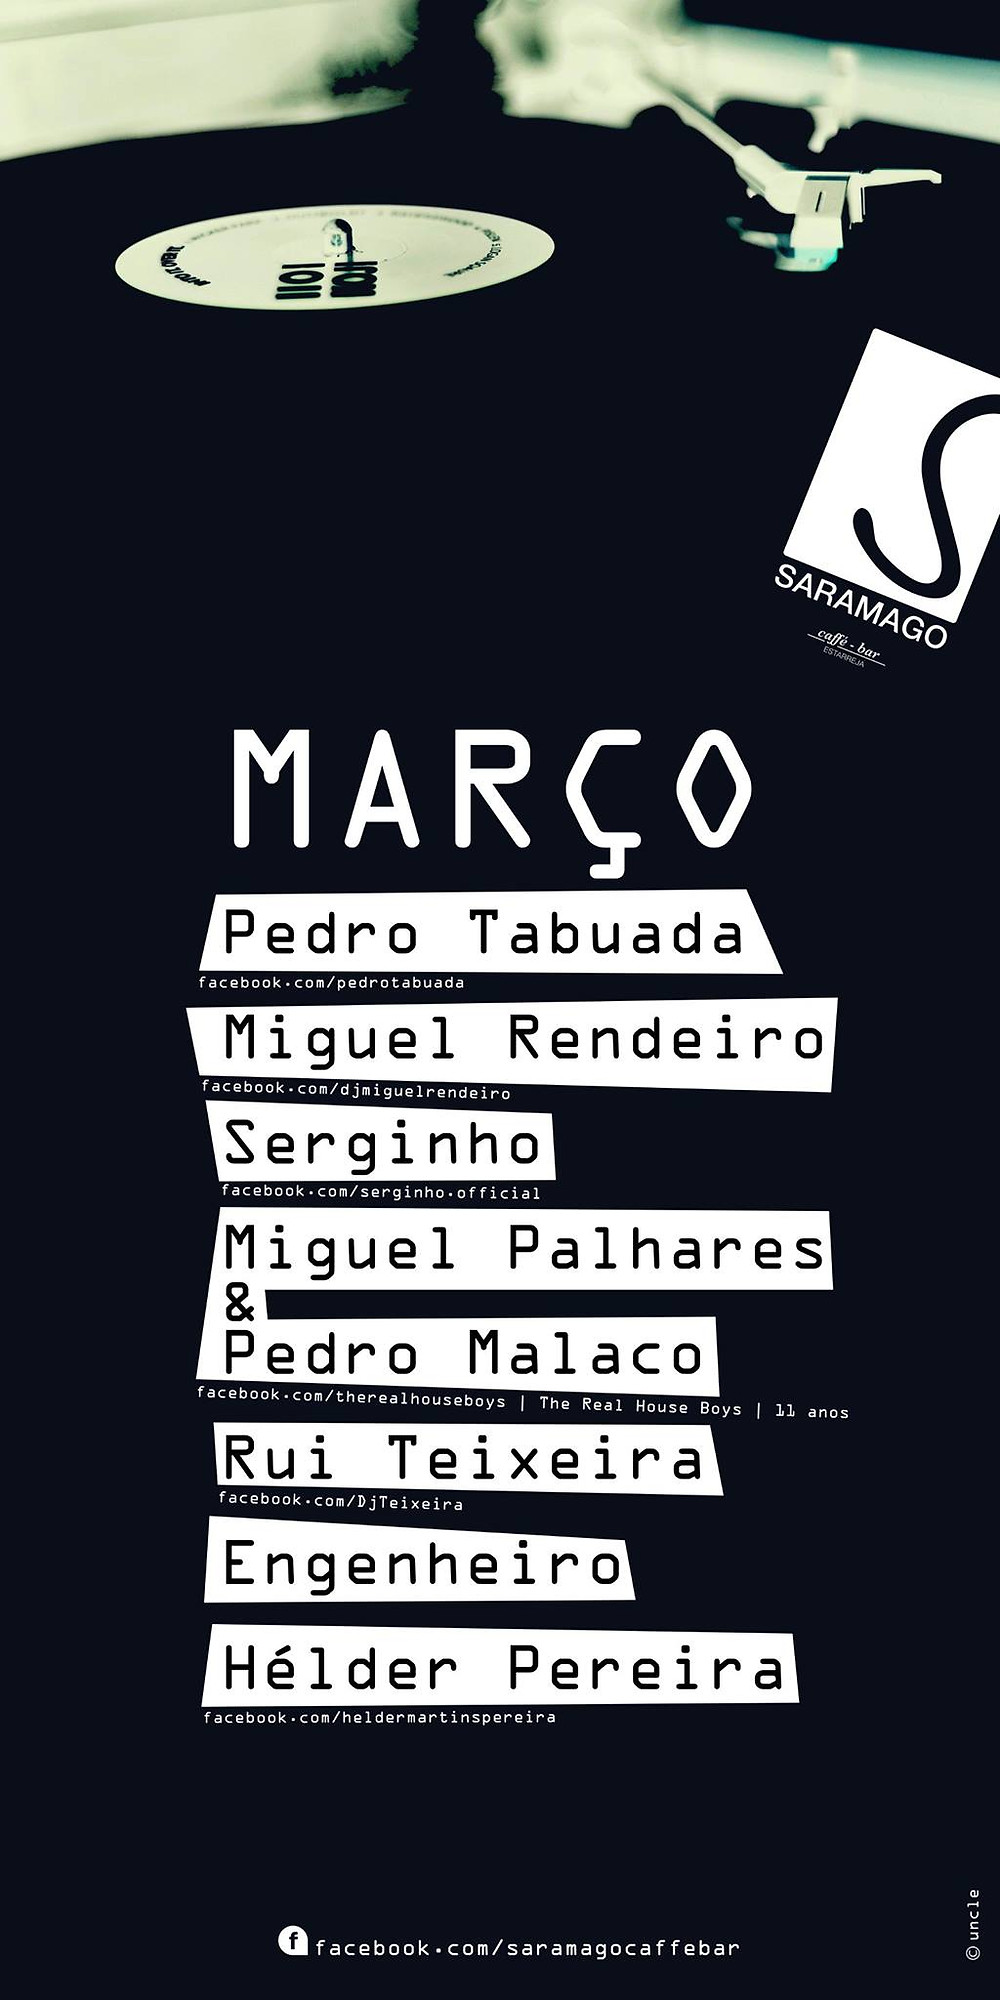 Miguel Palhares @ Saramago, Portugal (March)